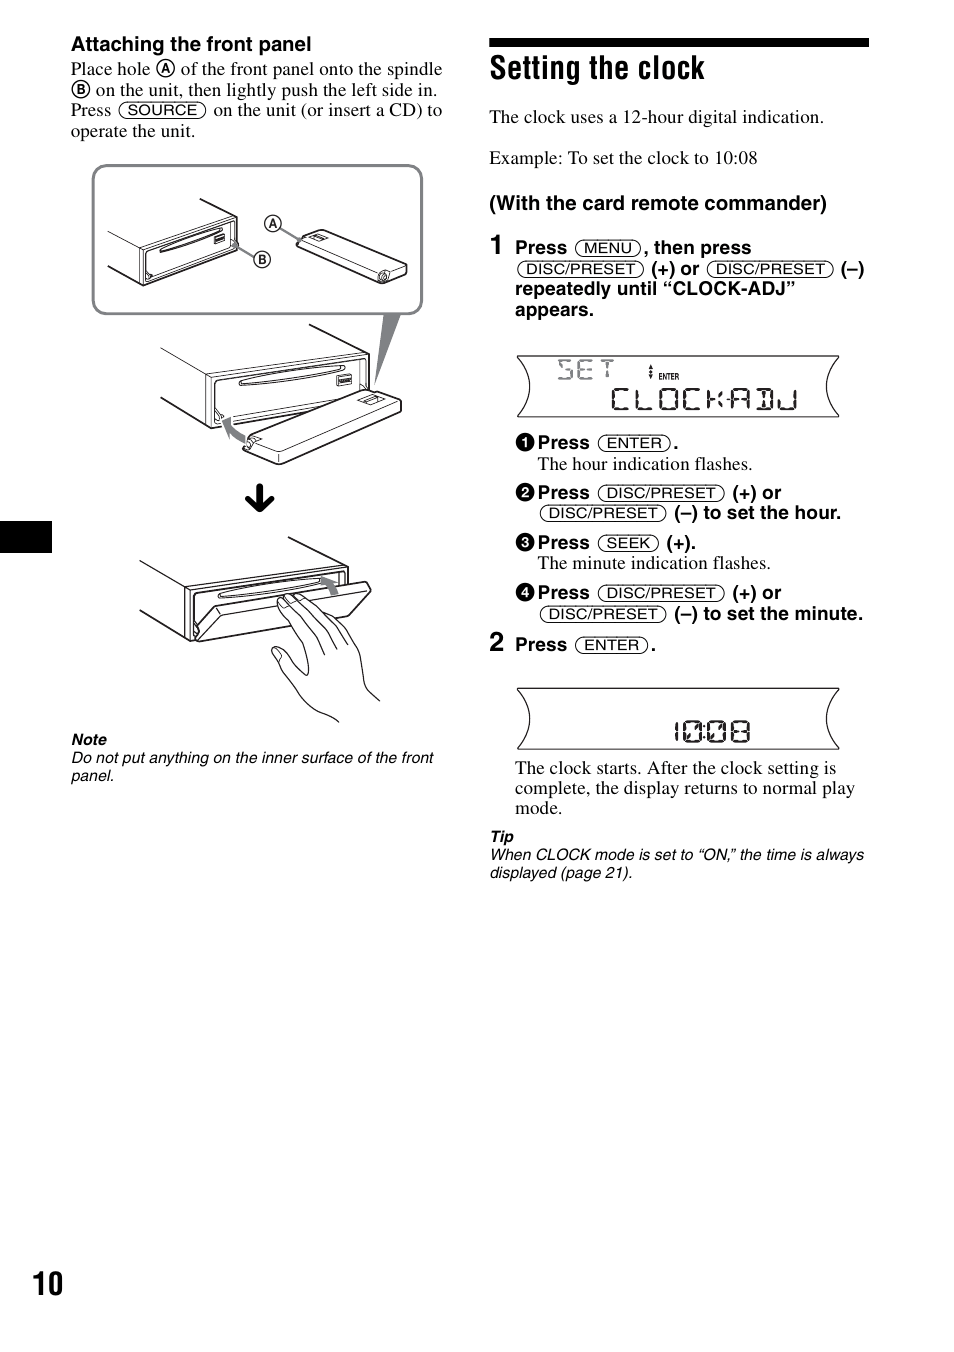 hight resolution of setting the clock sony cdx f5700 user manual page 10 92sony cdx f5700 wiring diagram